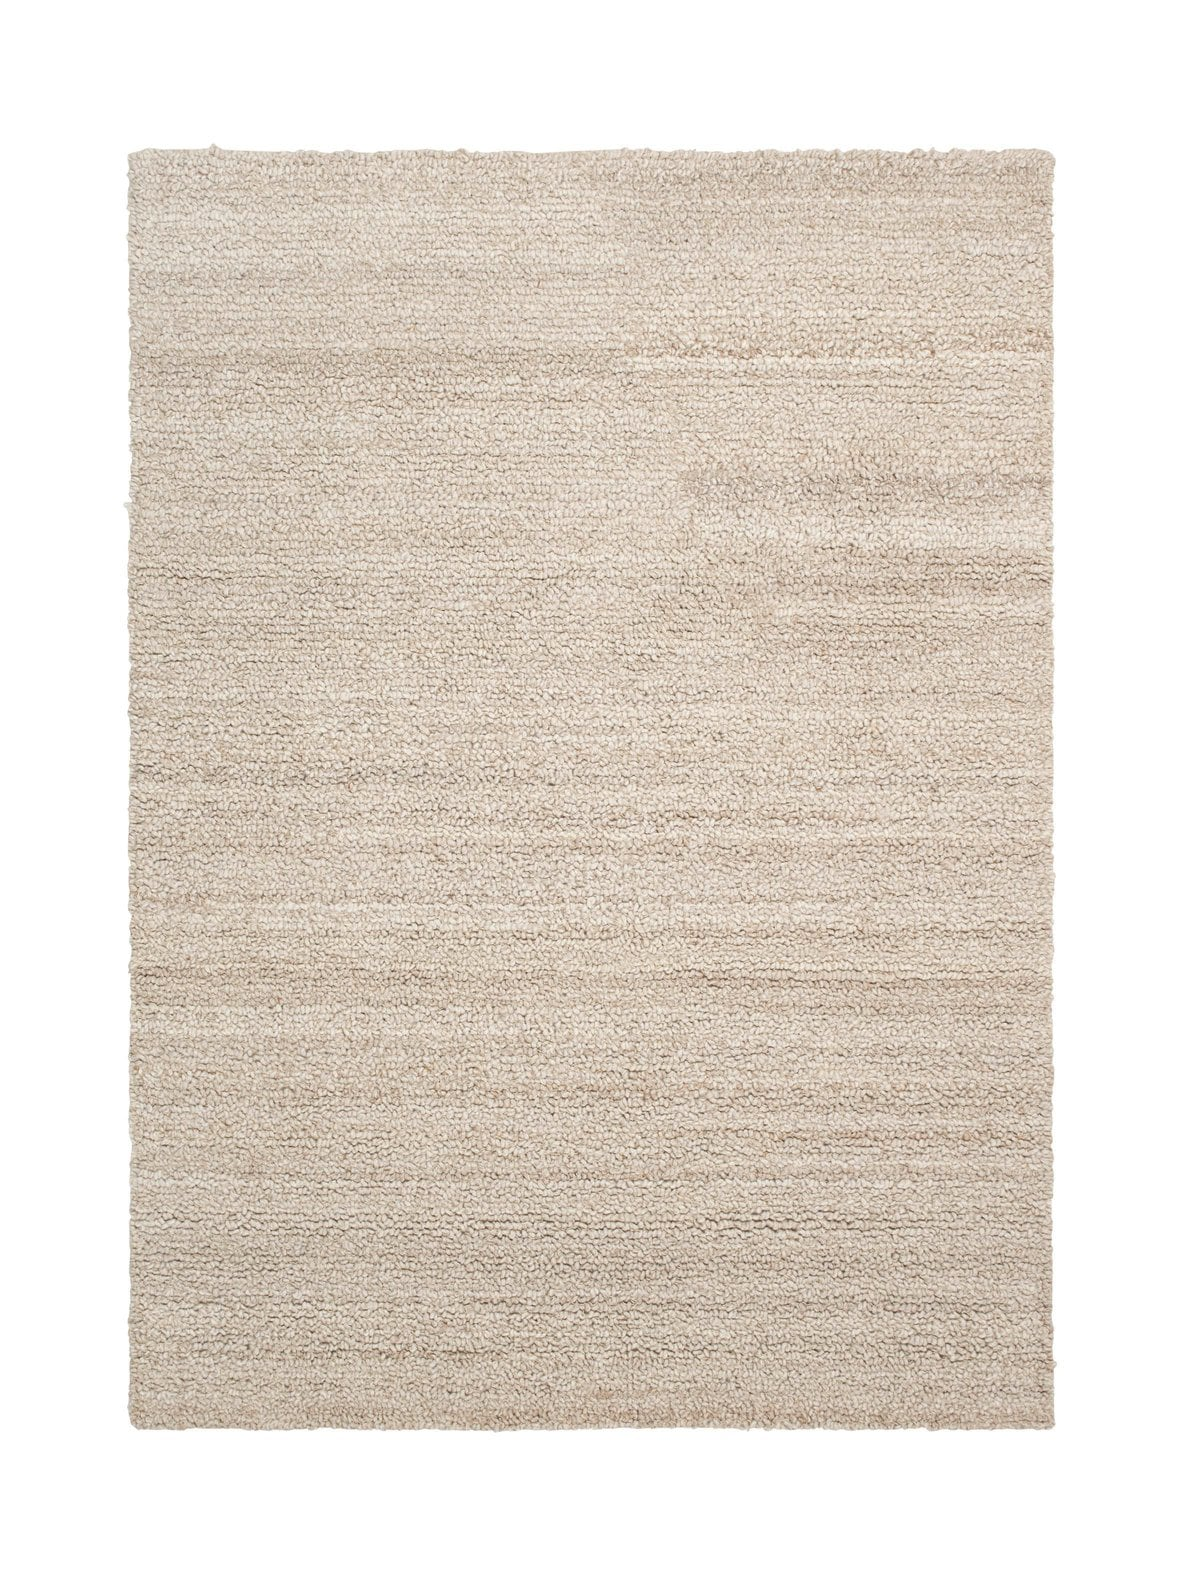 Shade Loop Rug -villamatto 140 x 200 cm, ferm LIVING